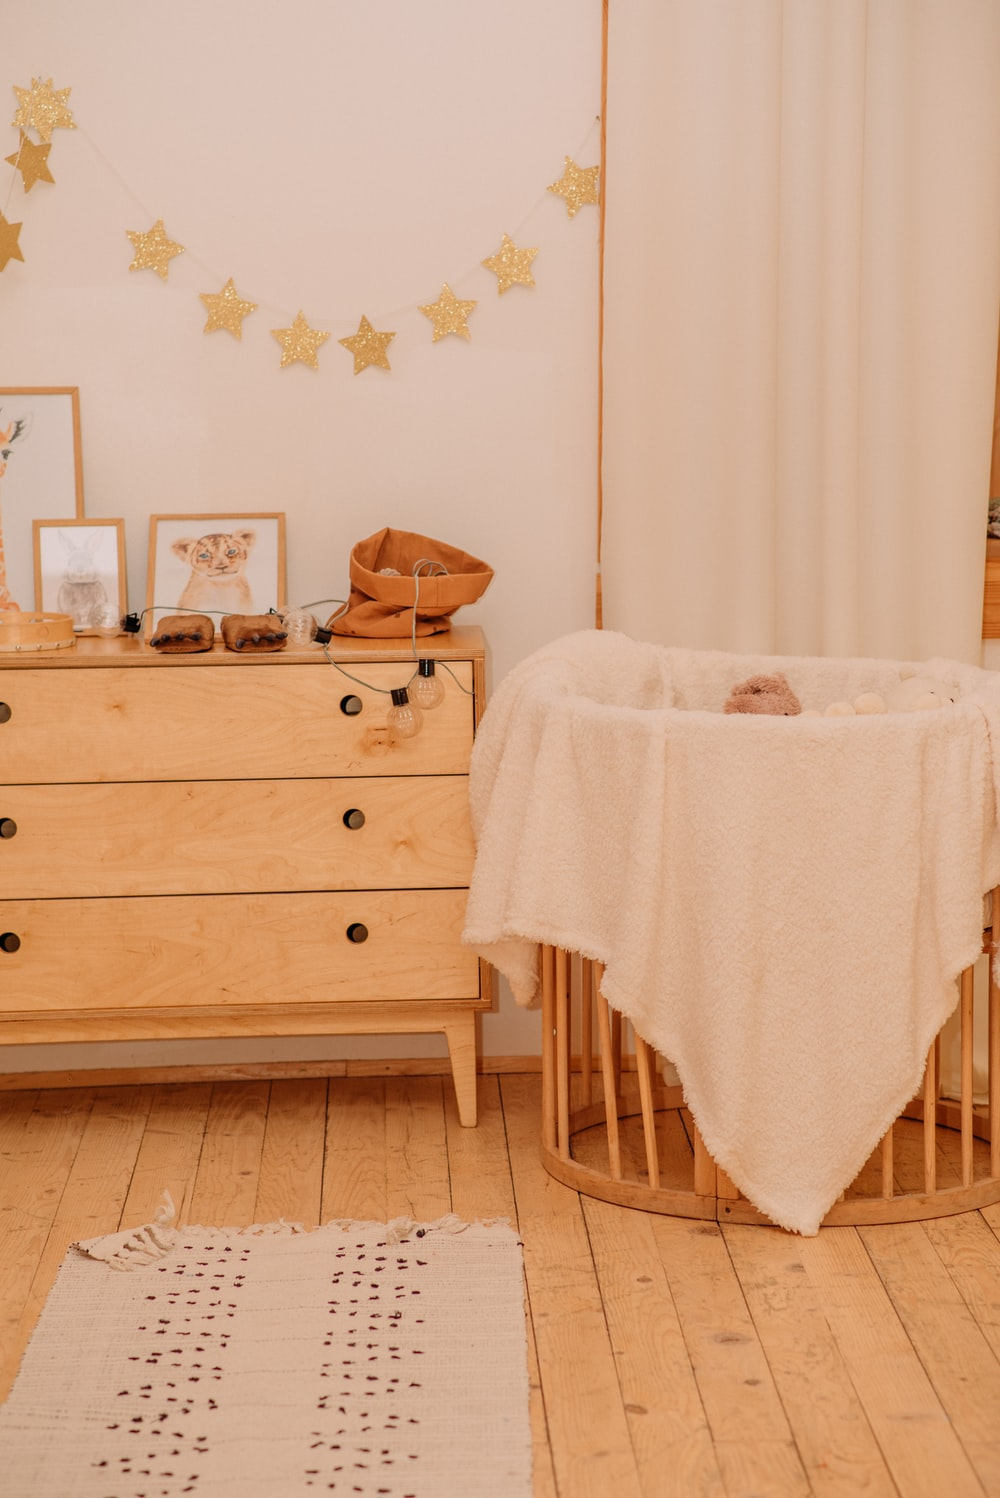 white towel on brown wooden chair